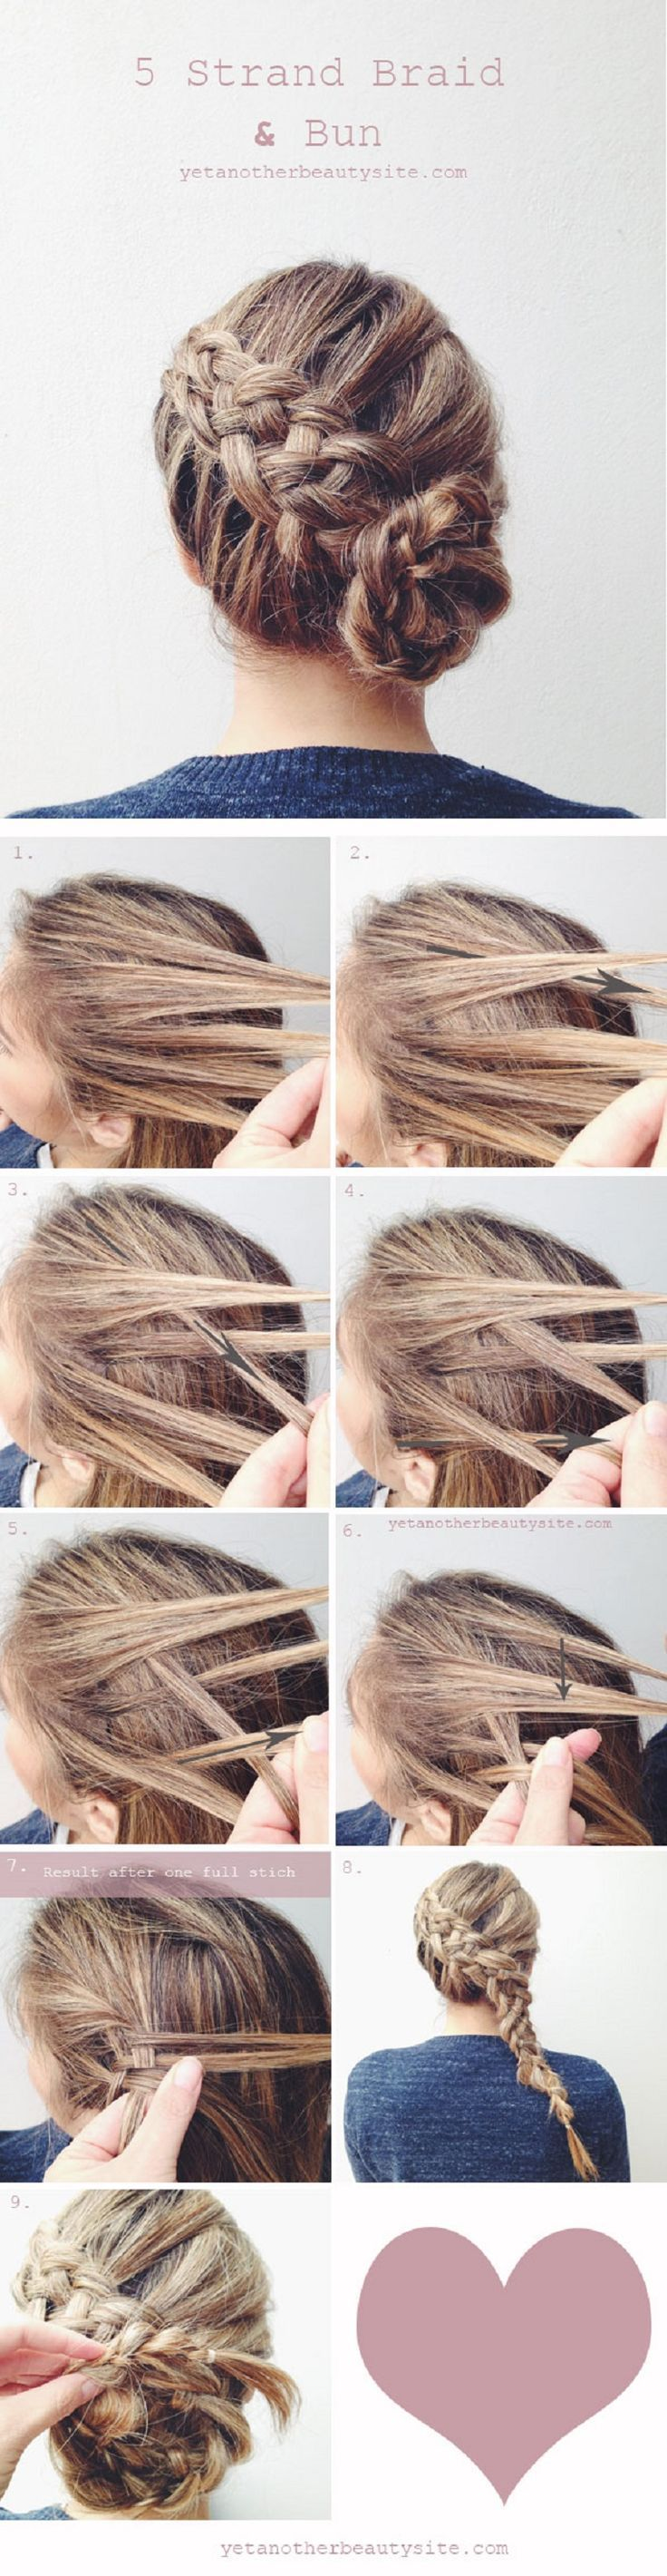 186 best Hairstyles images on Pinterest